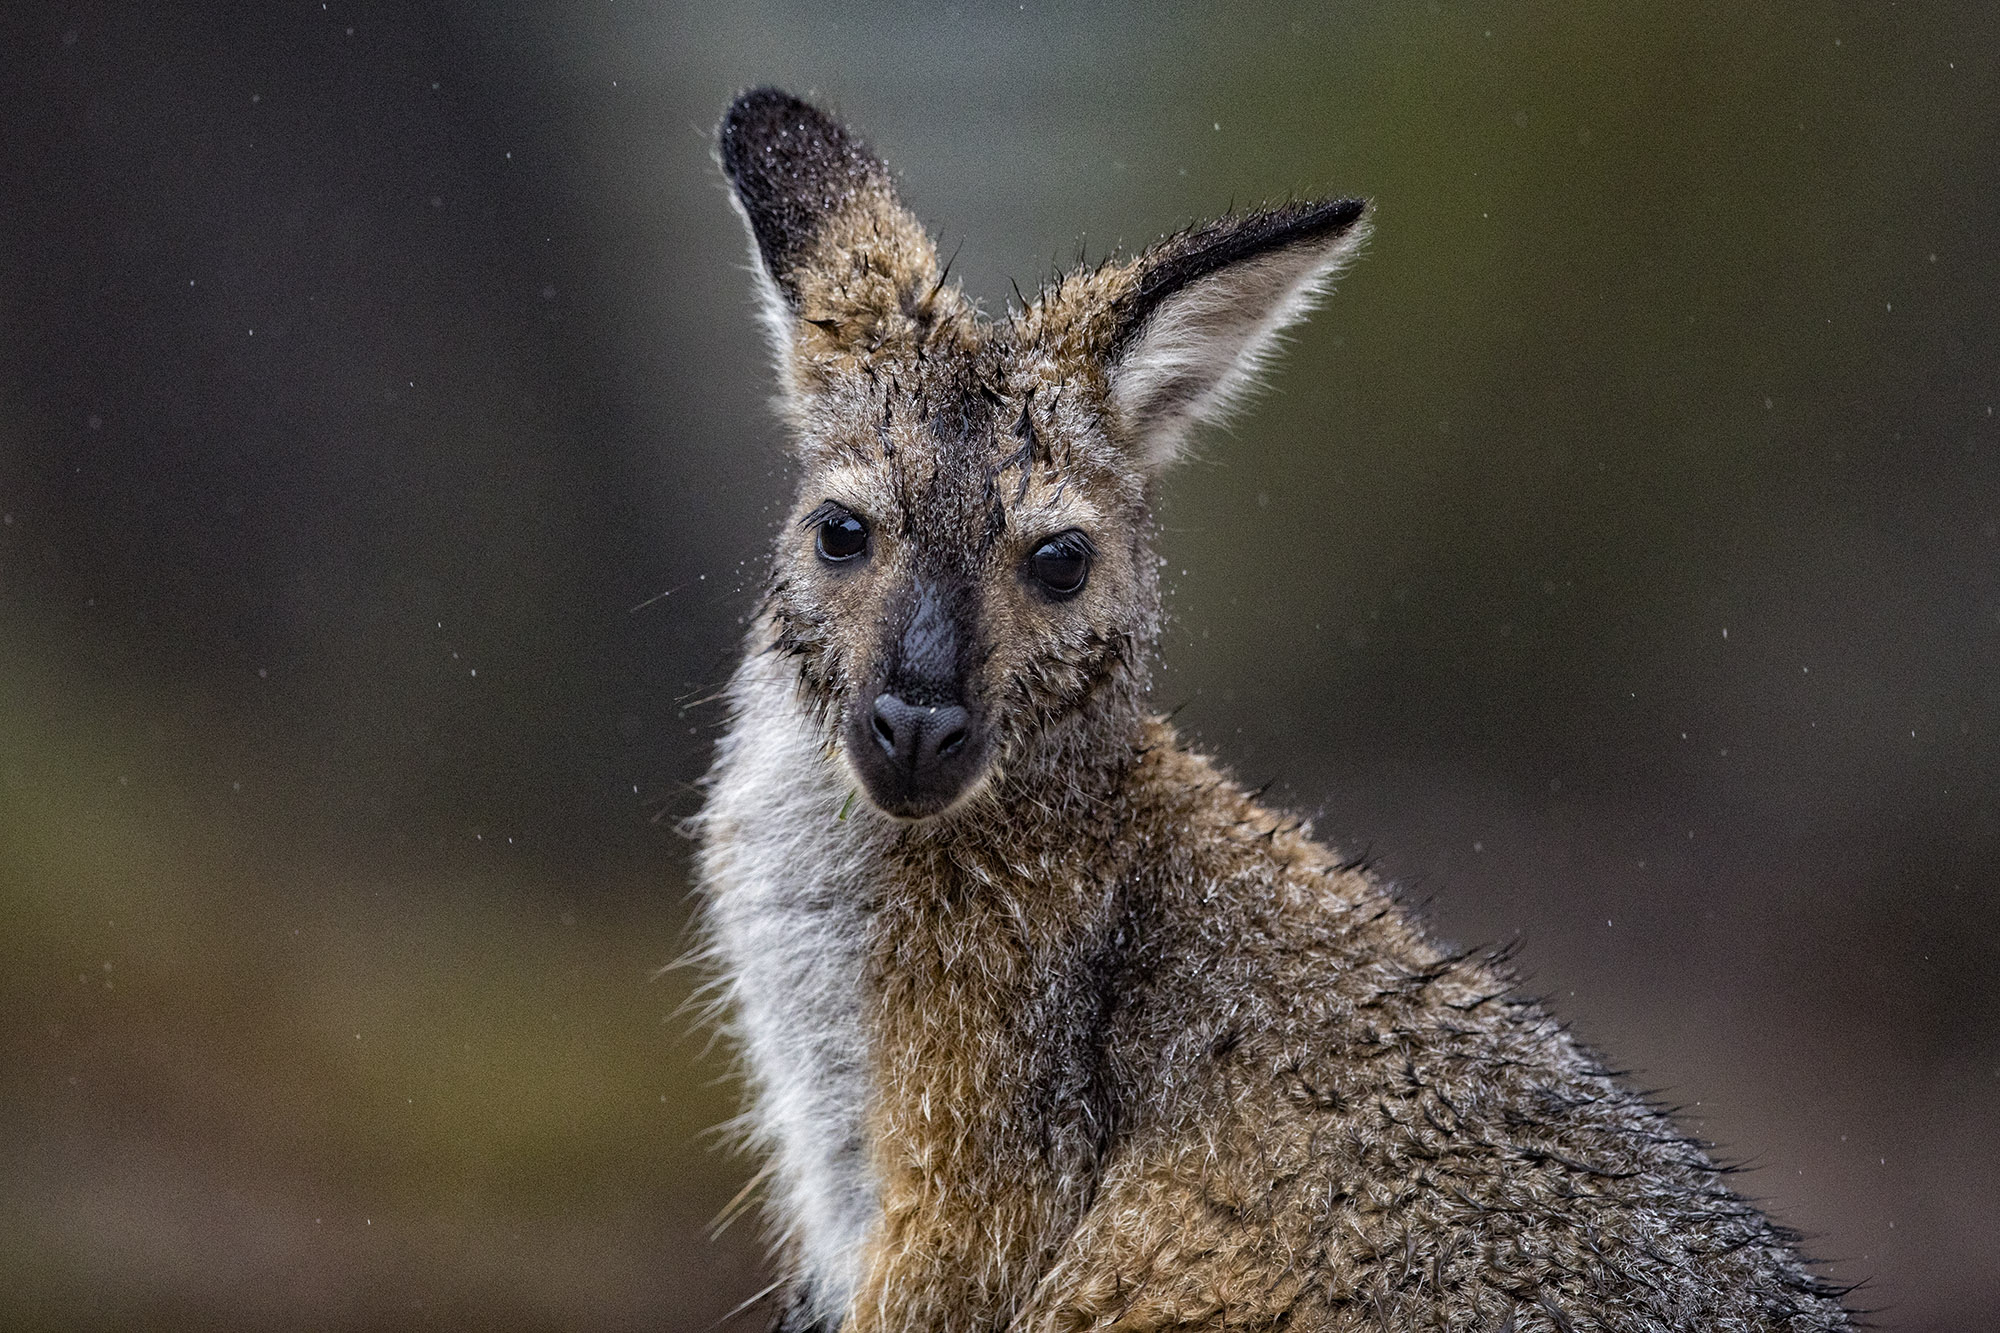 Wallaby_7.jpg